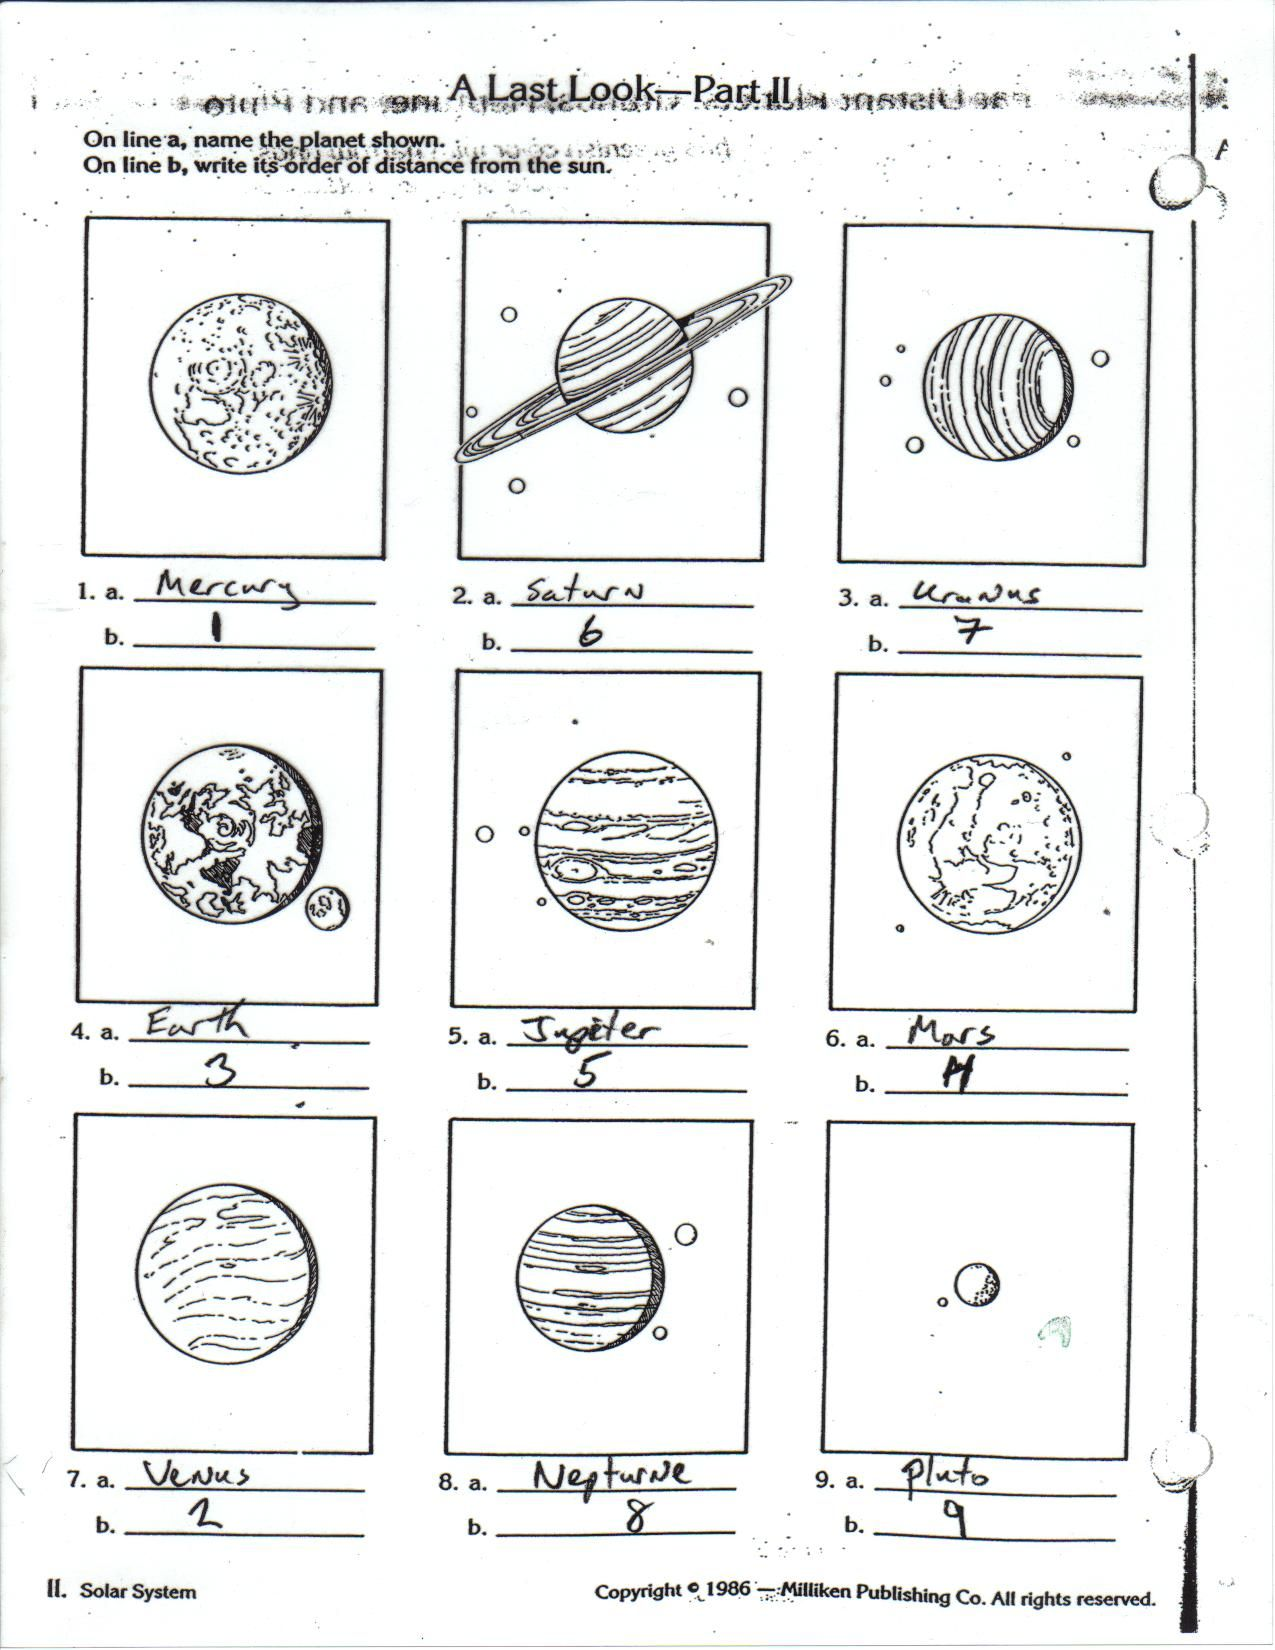 worksheet Planets Worksheet planets for kids worksheets google search science pinterest the outer worksheet answers